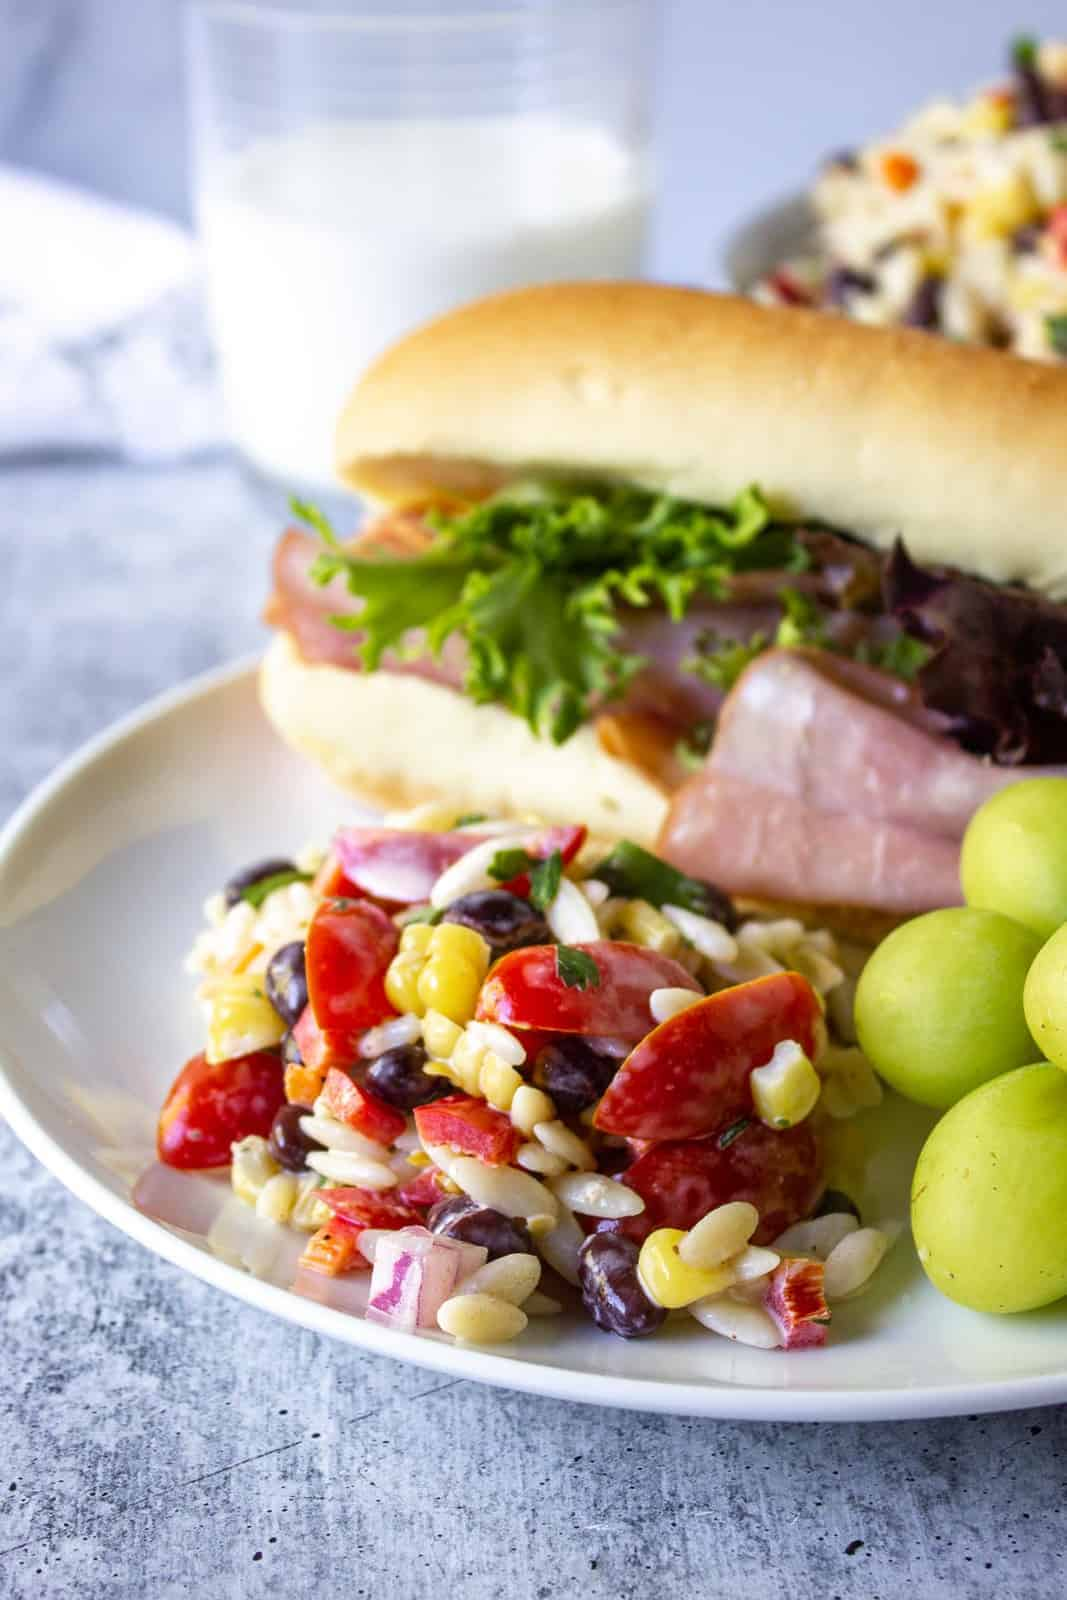 A plate with a ham sandwich, fresh grapes and a pasta salad.